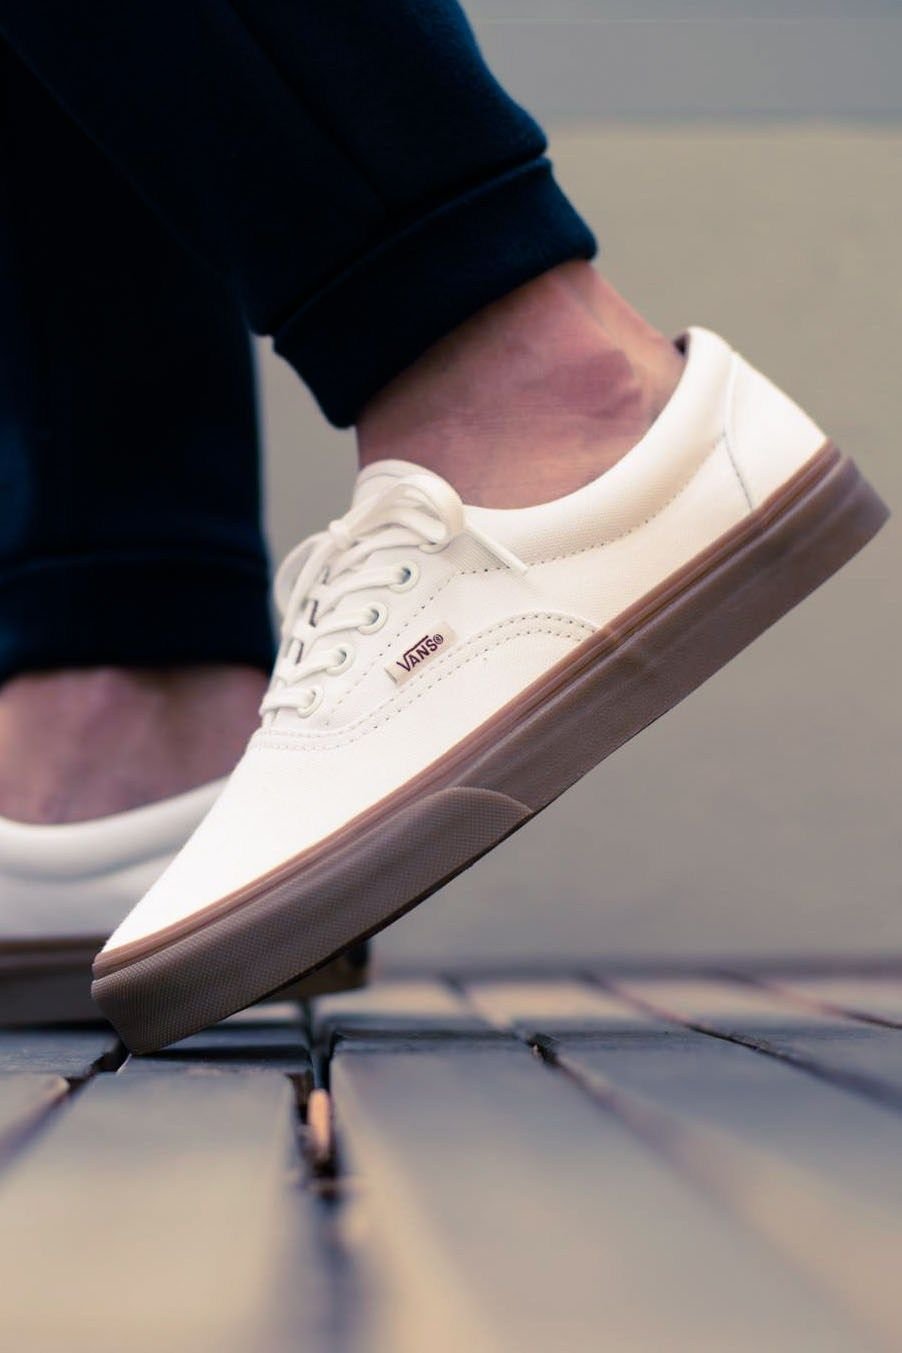 65ac720b3b7a Here are some looks for the white canvas shoes that you cannot miss! Some  tricks and tips to make your white canvas stylish!